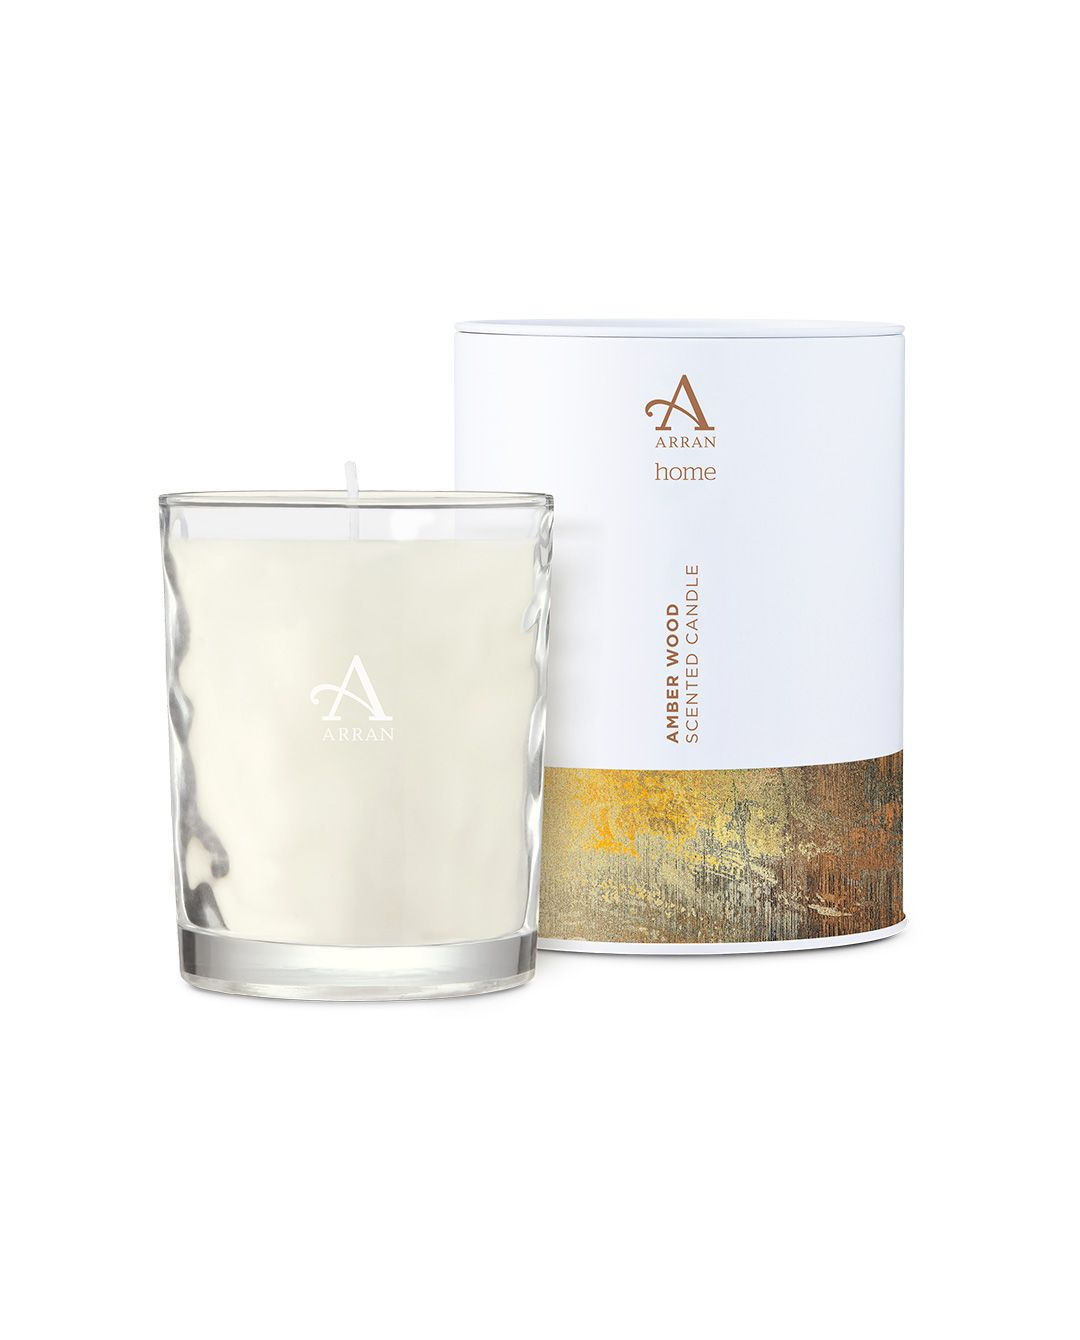 Image of Arran Aromatics Amberwood 35cl Candle in Tin